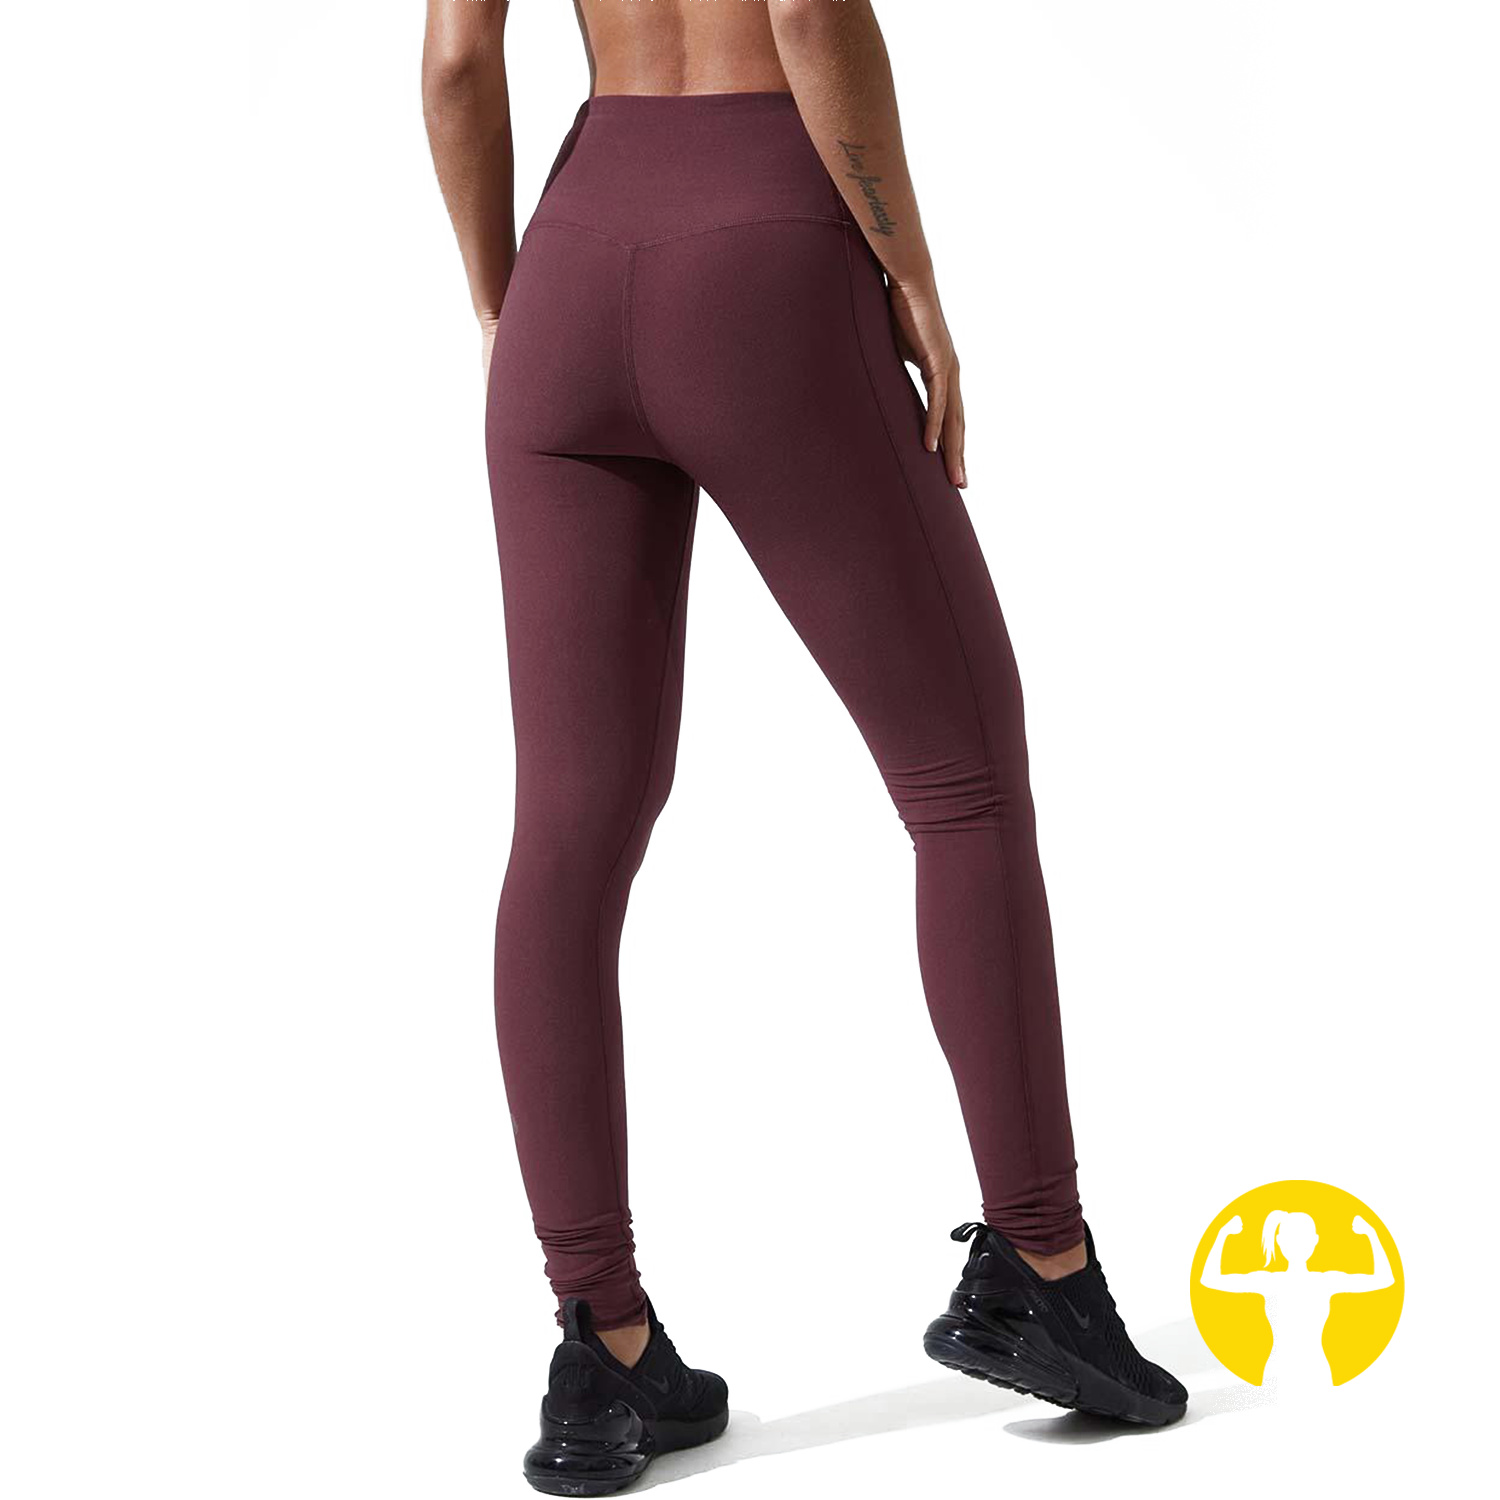 Rapid High Waisted Recycled Polyester Leggings - Chocolate Berry